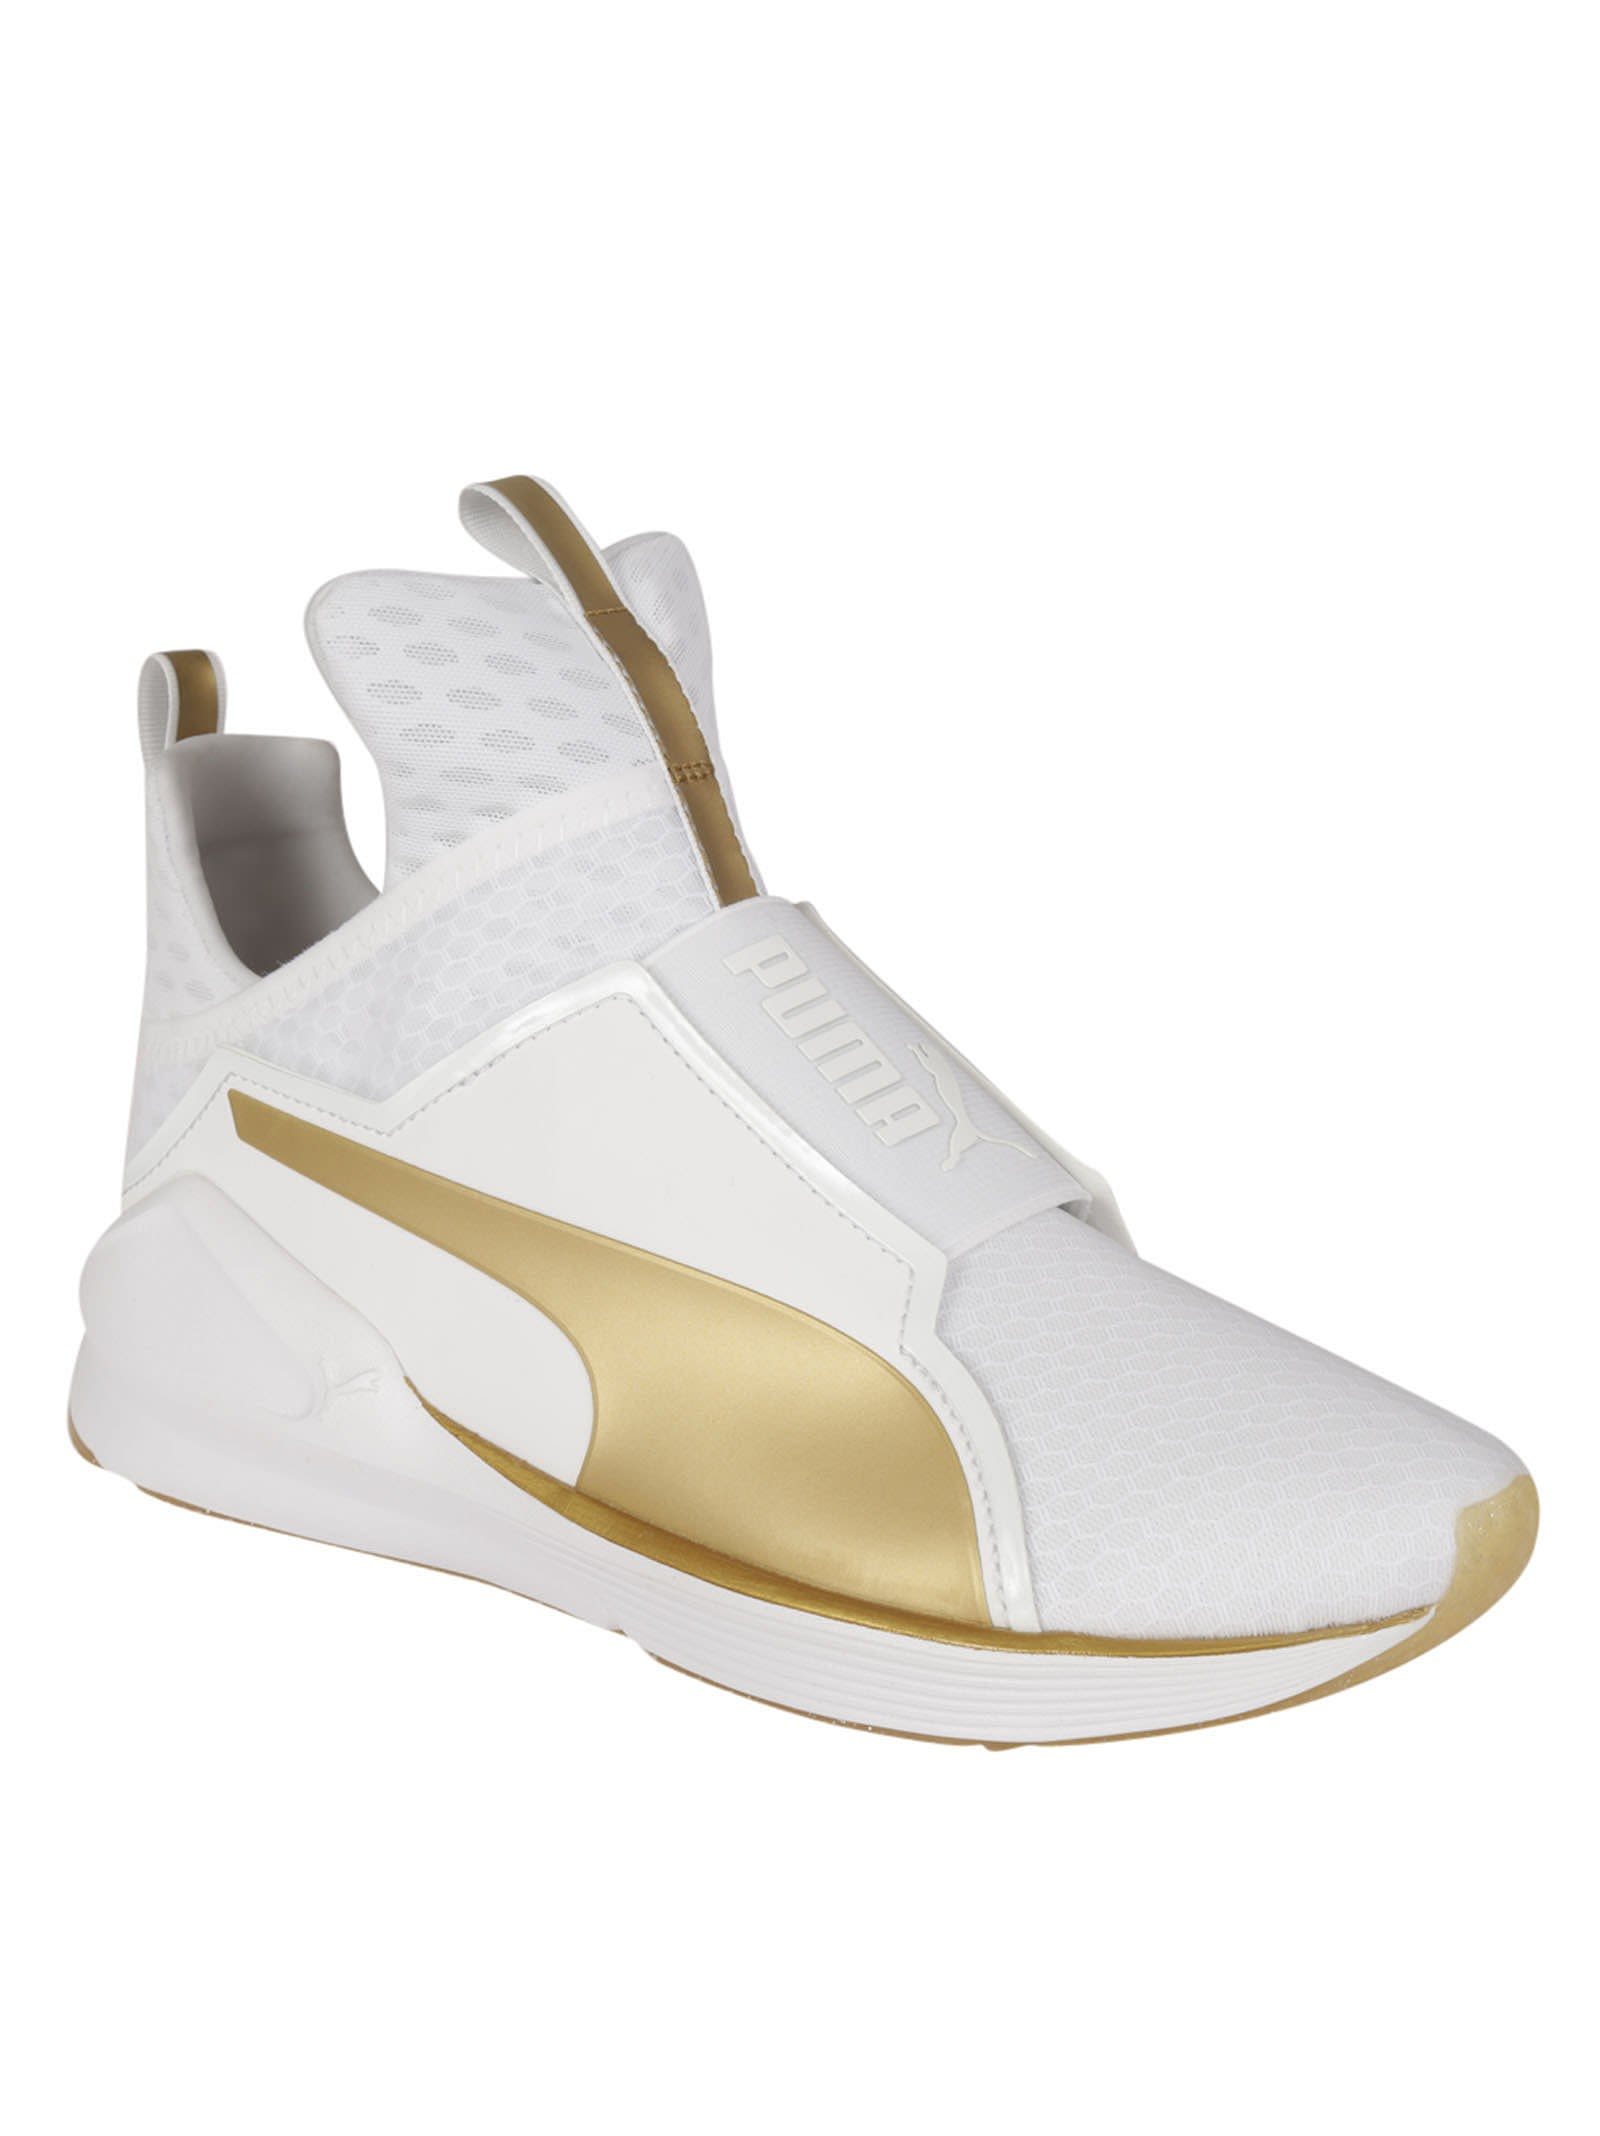 Flat White Fashion Sneakers With Gold Studs Womens